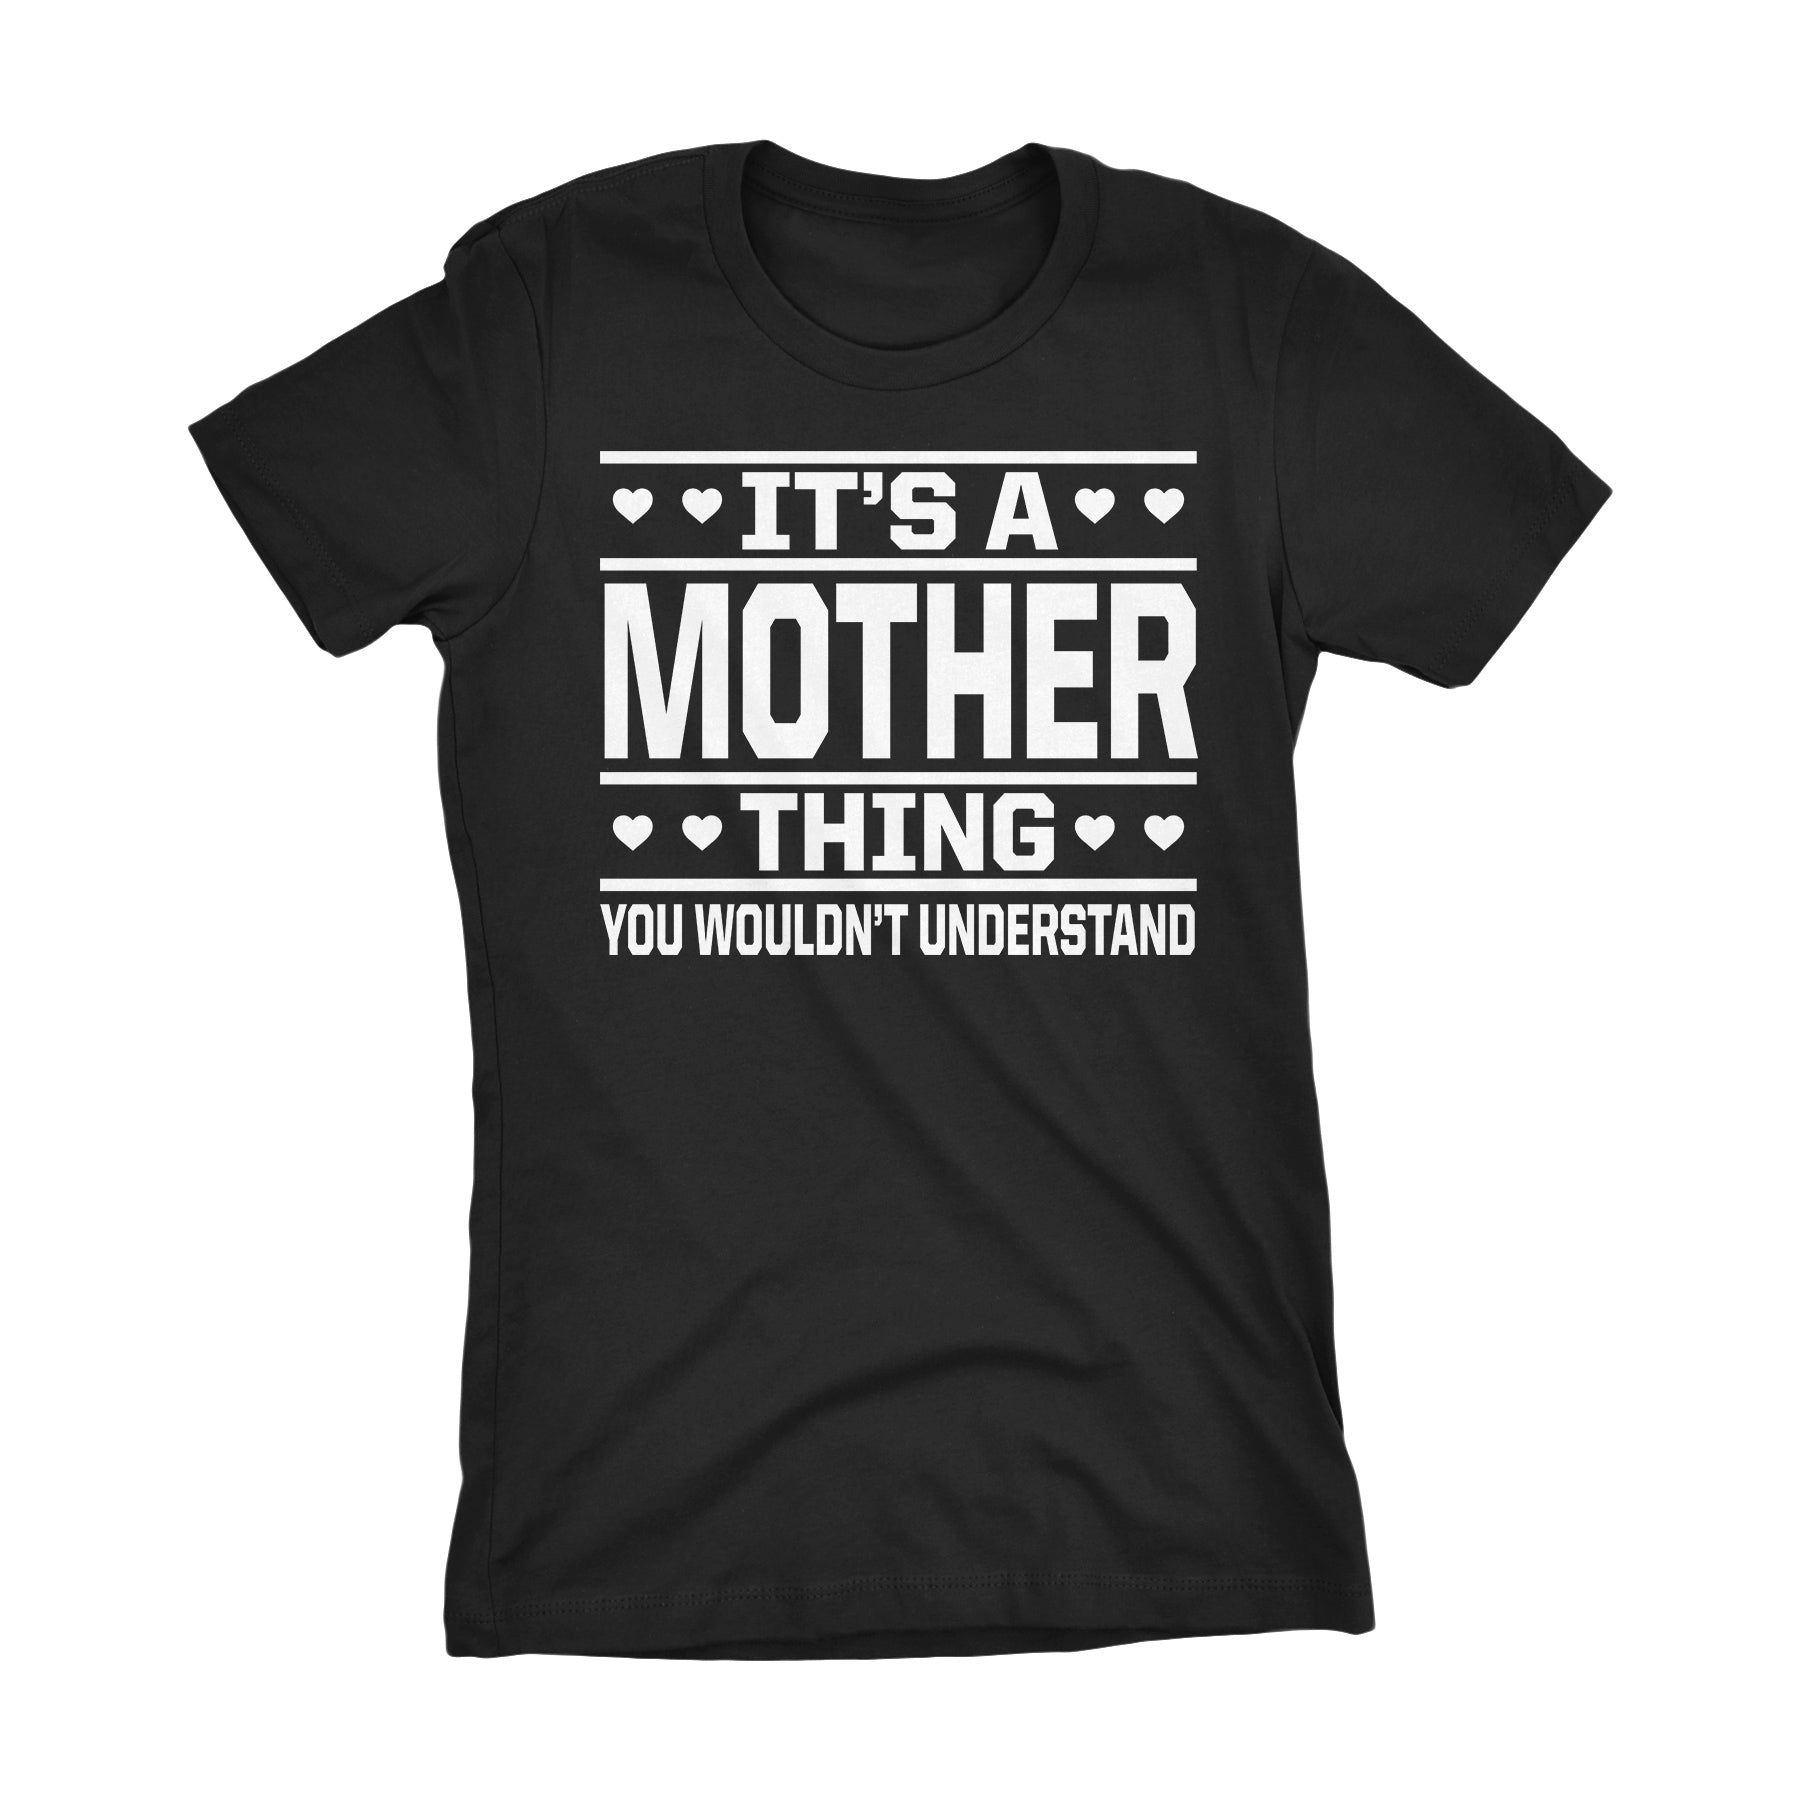 It's A MOTHER Thing You Wouldn't Understand - 001 Mom Ladies Fit T-shirt